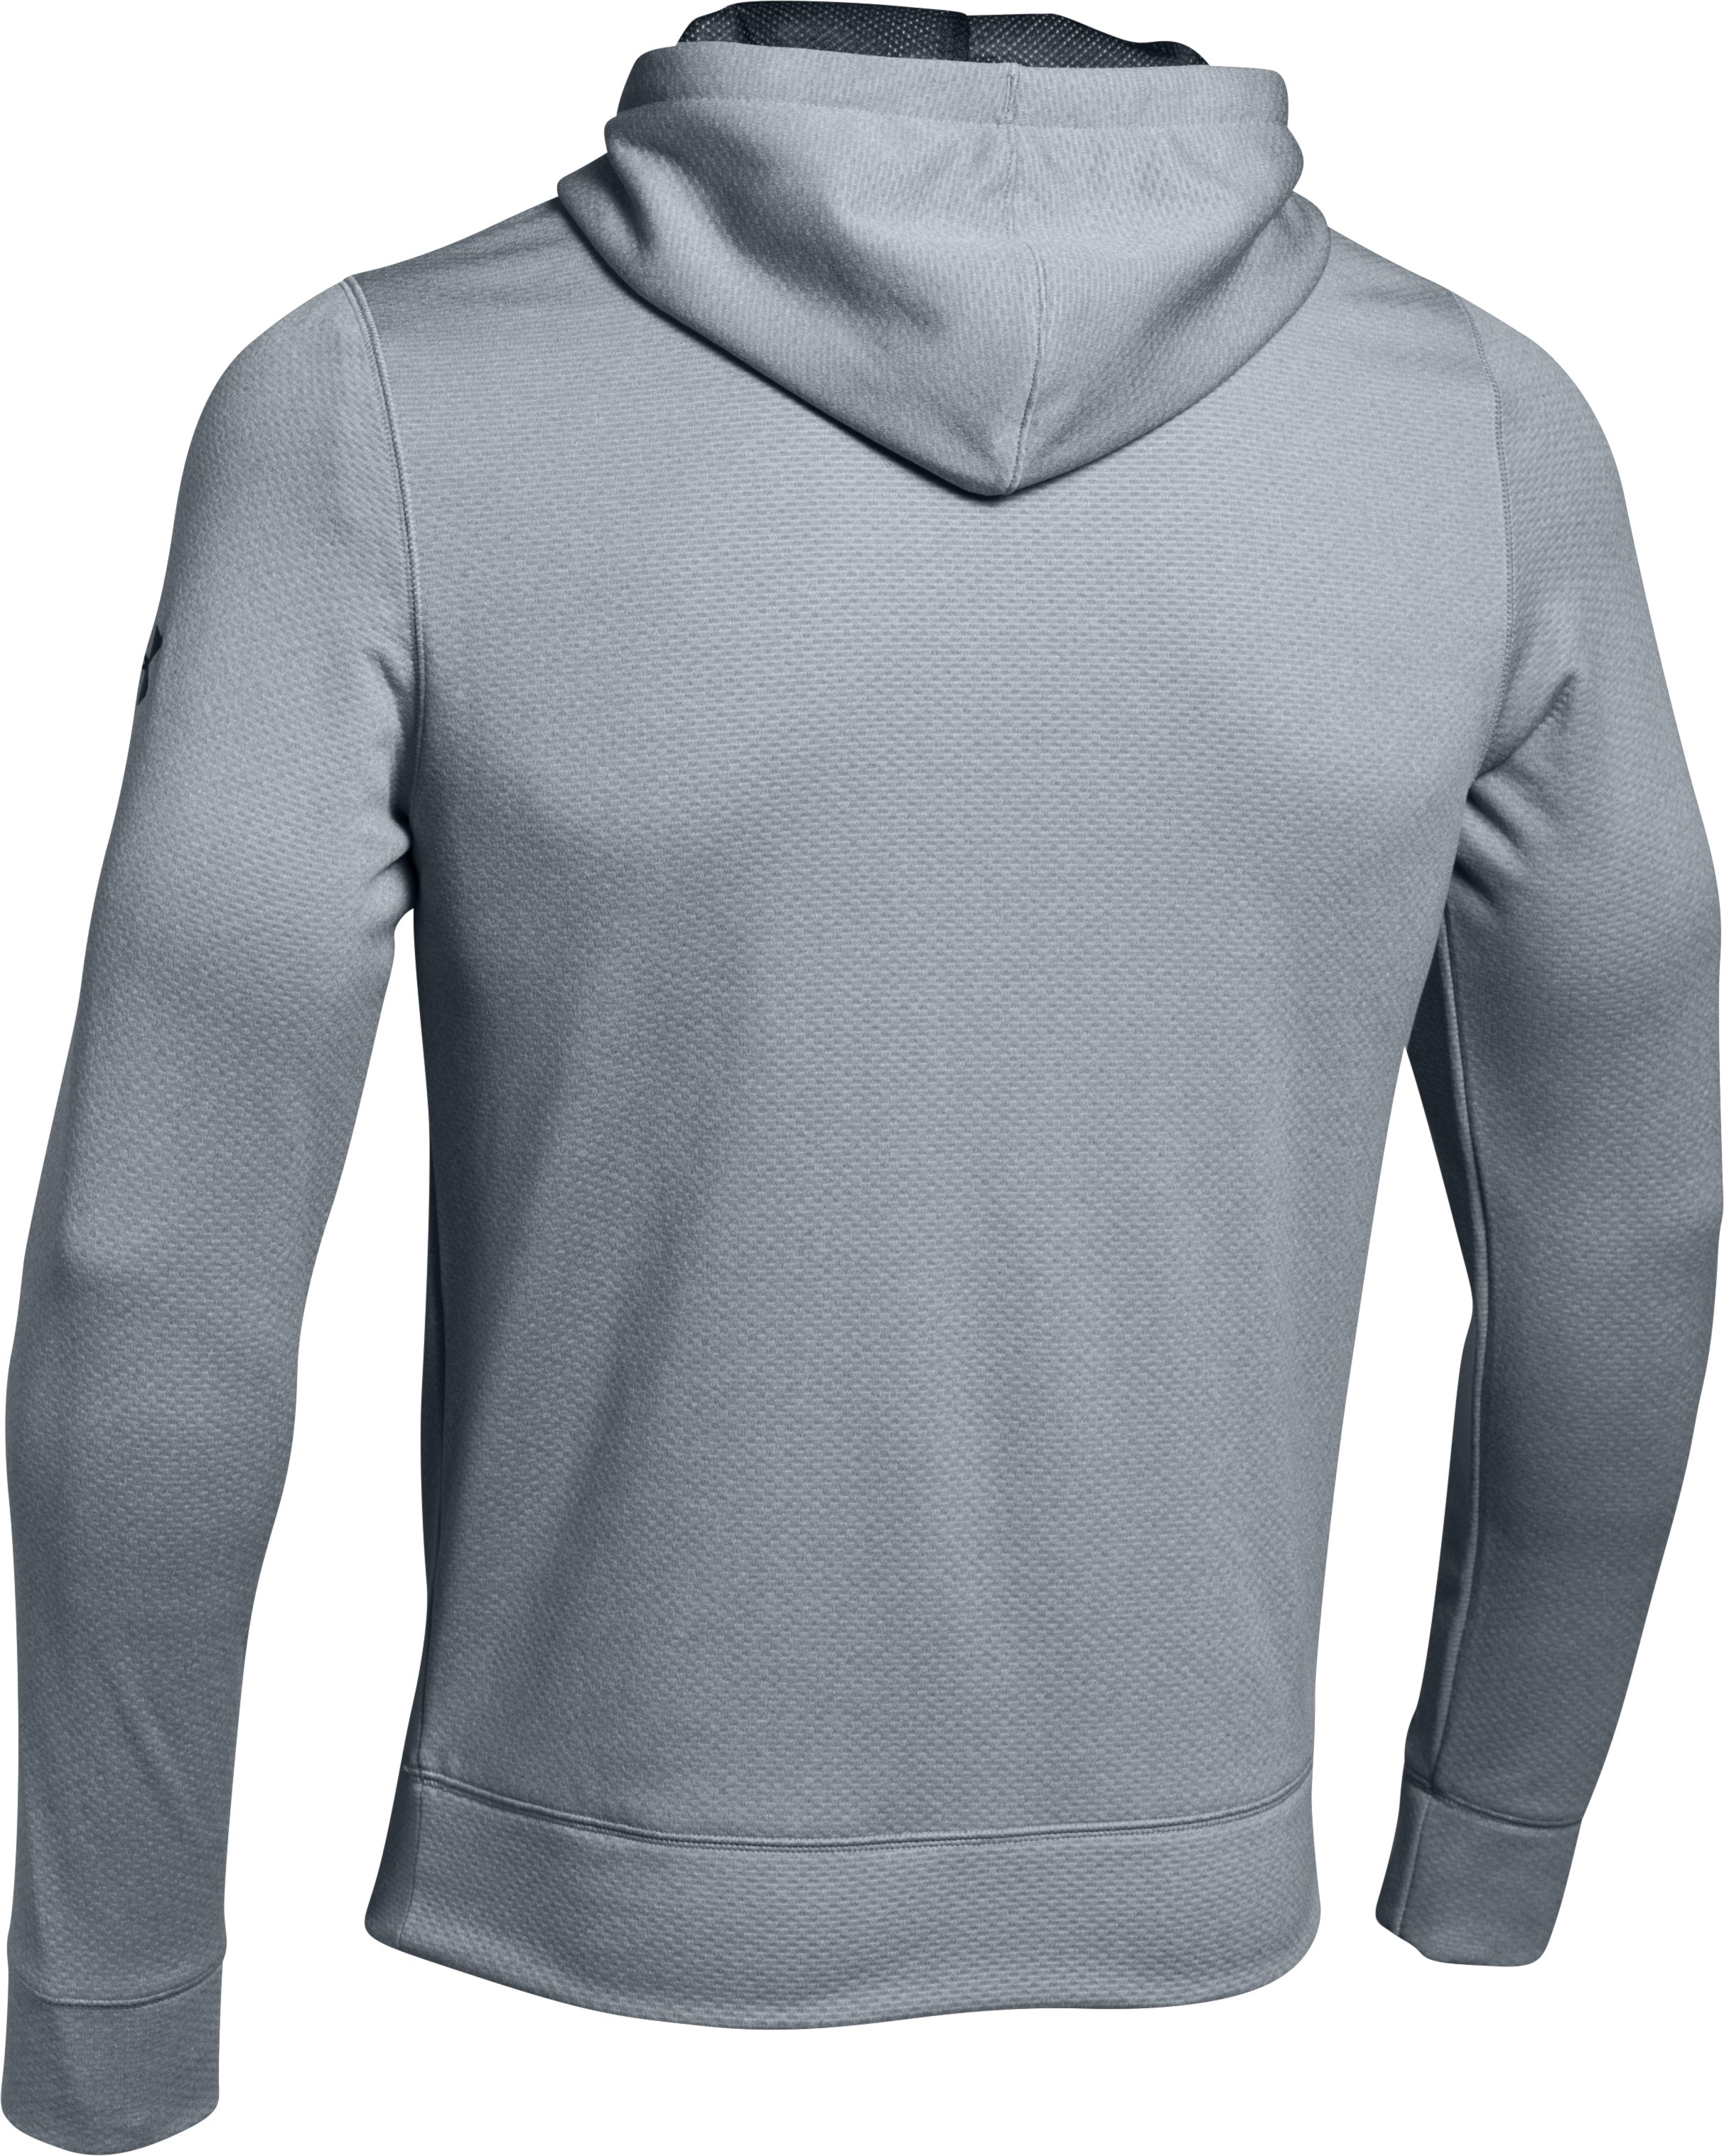 Men's SC30 Essentials Hoodie, True Gray Heather